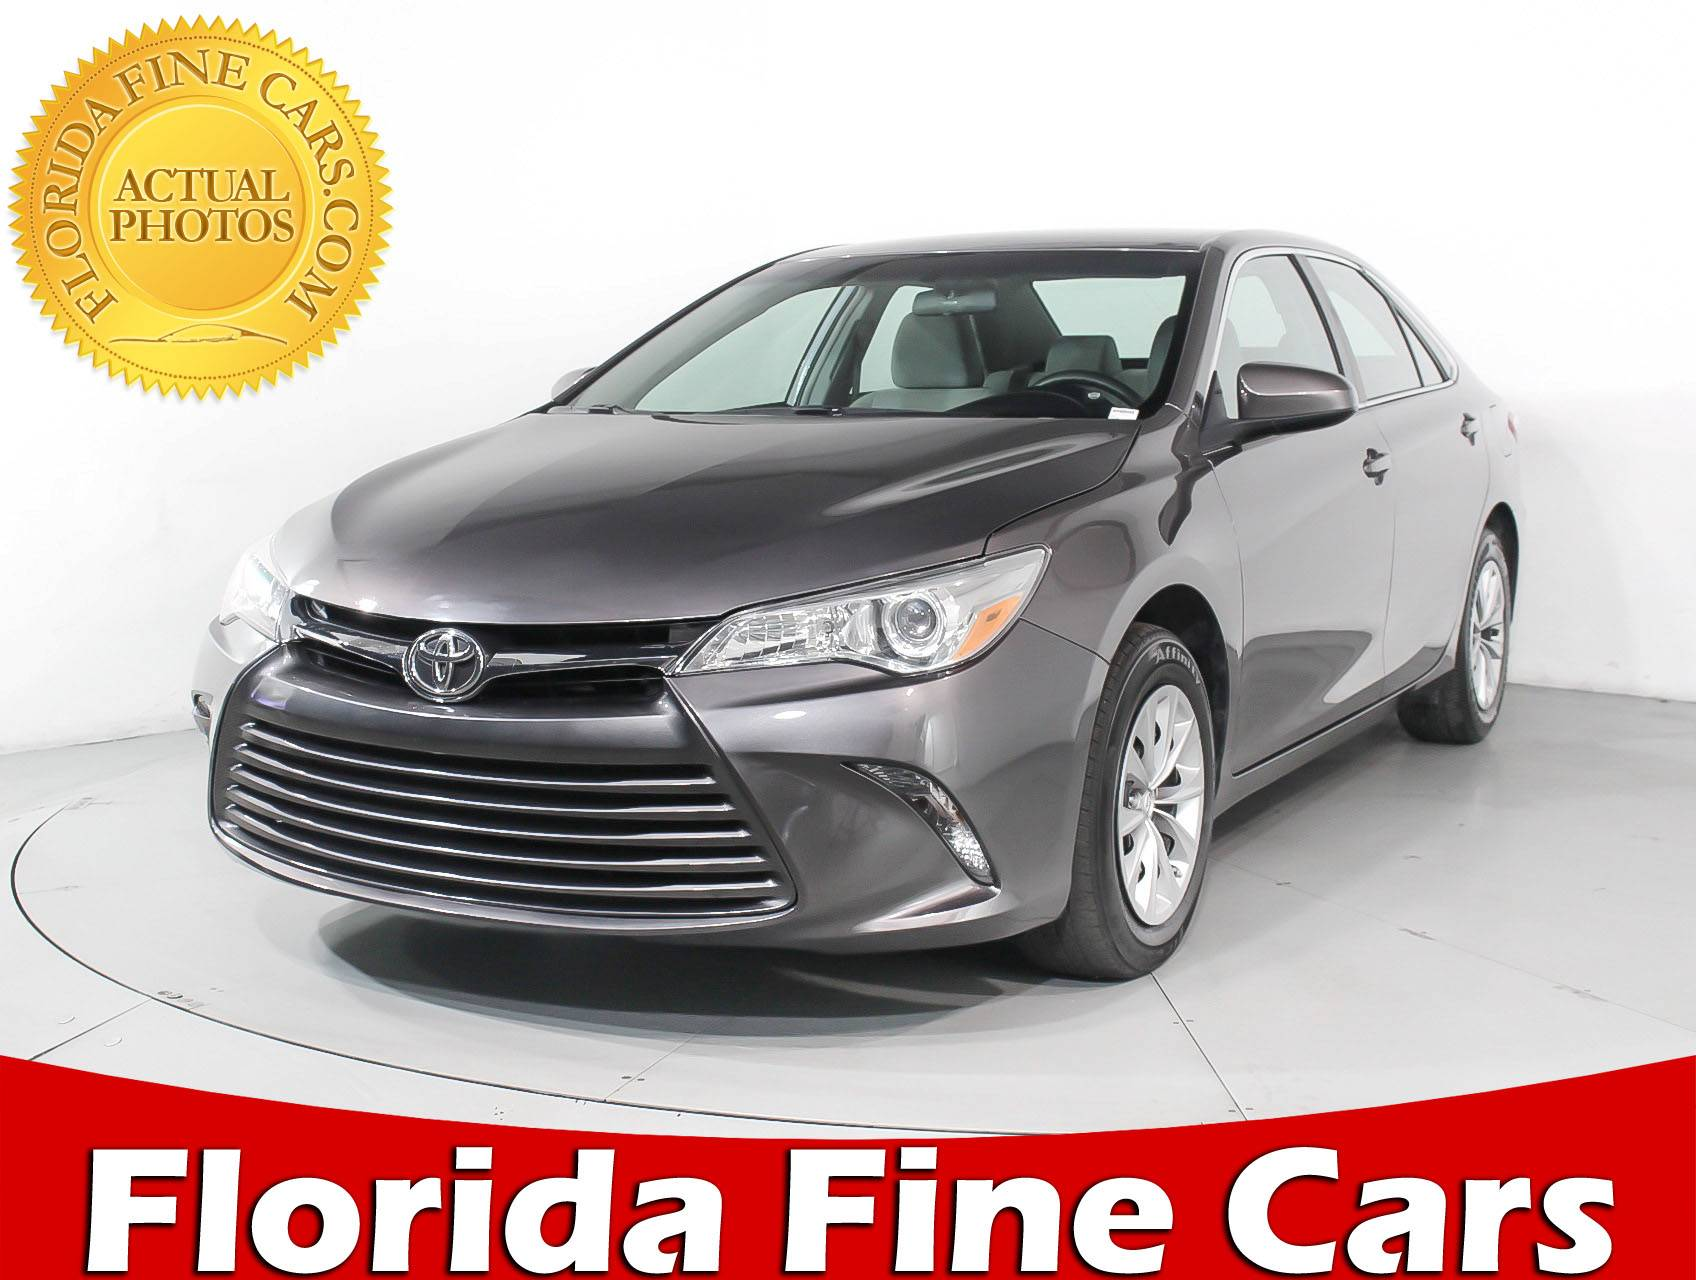 Used 2015 TOYOTA CAMRY Le Sedan for sale in MARGATE FL